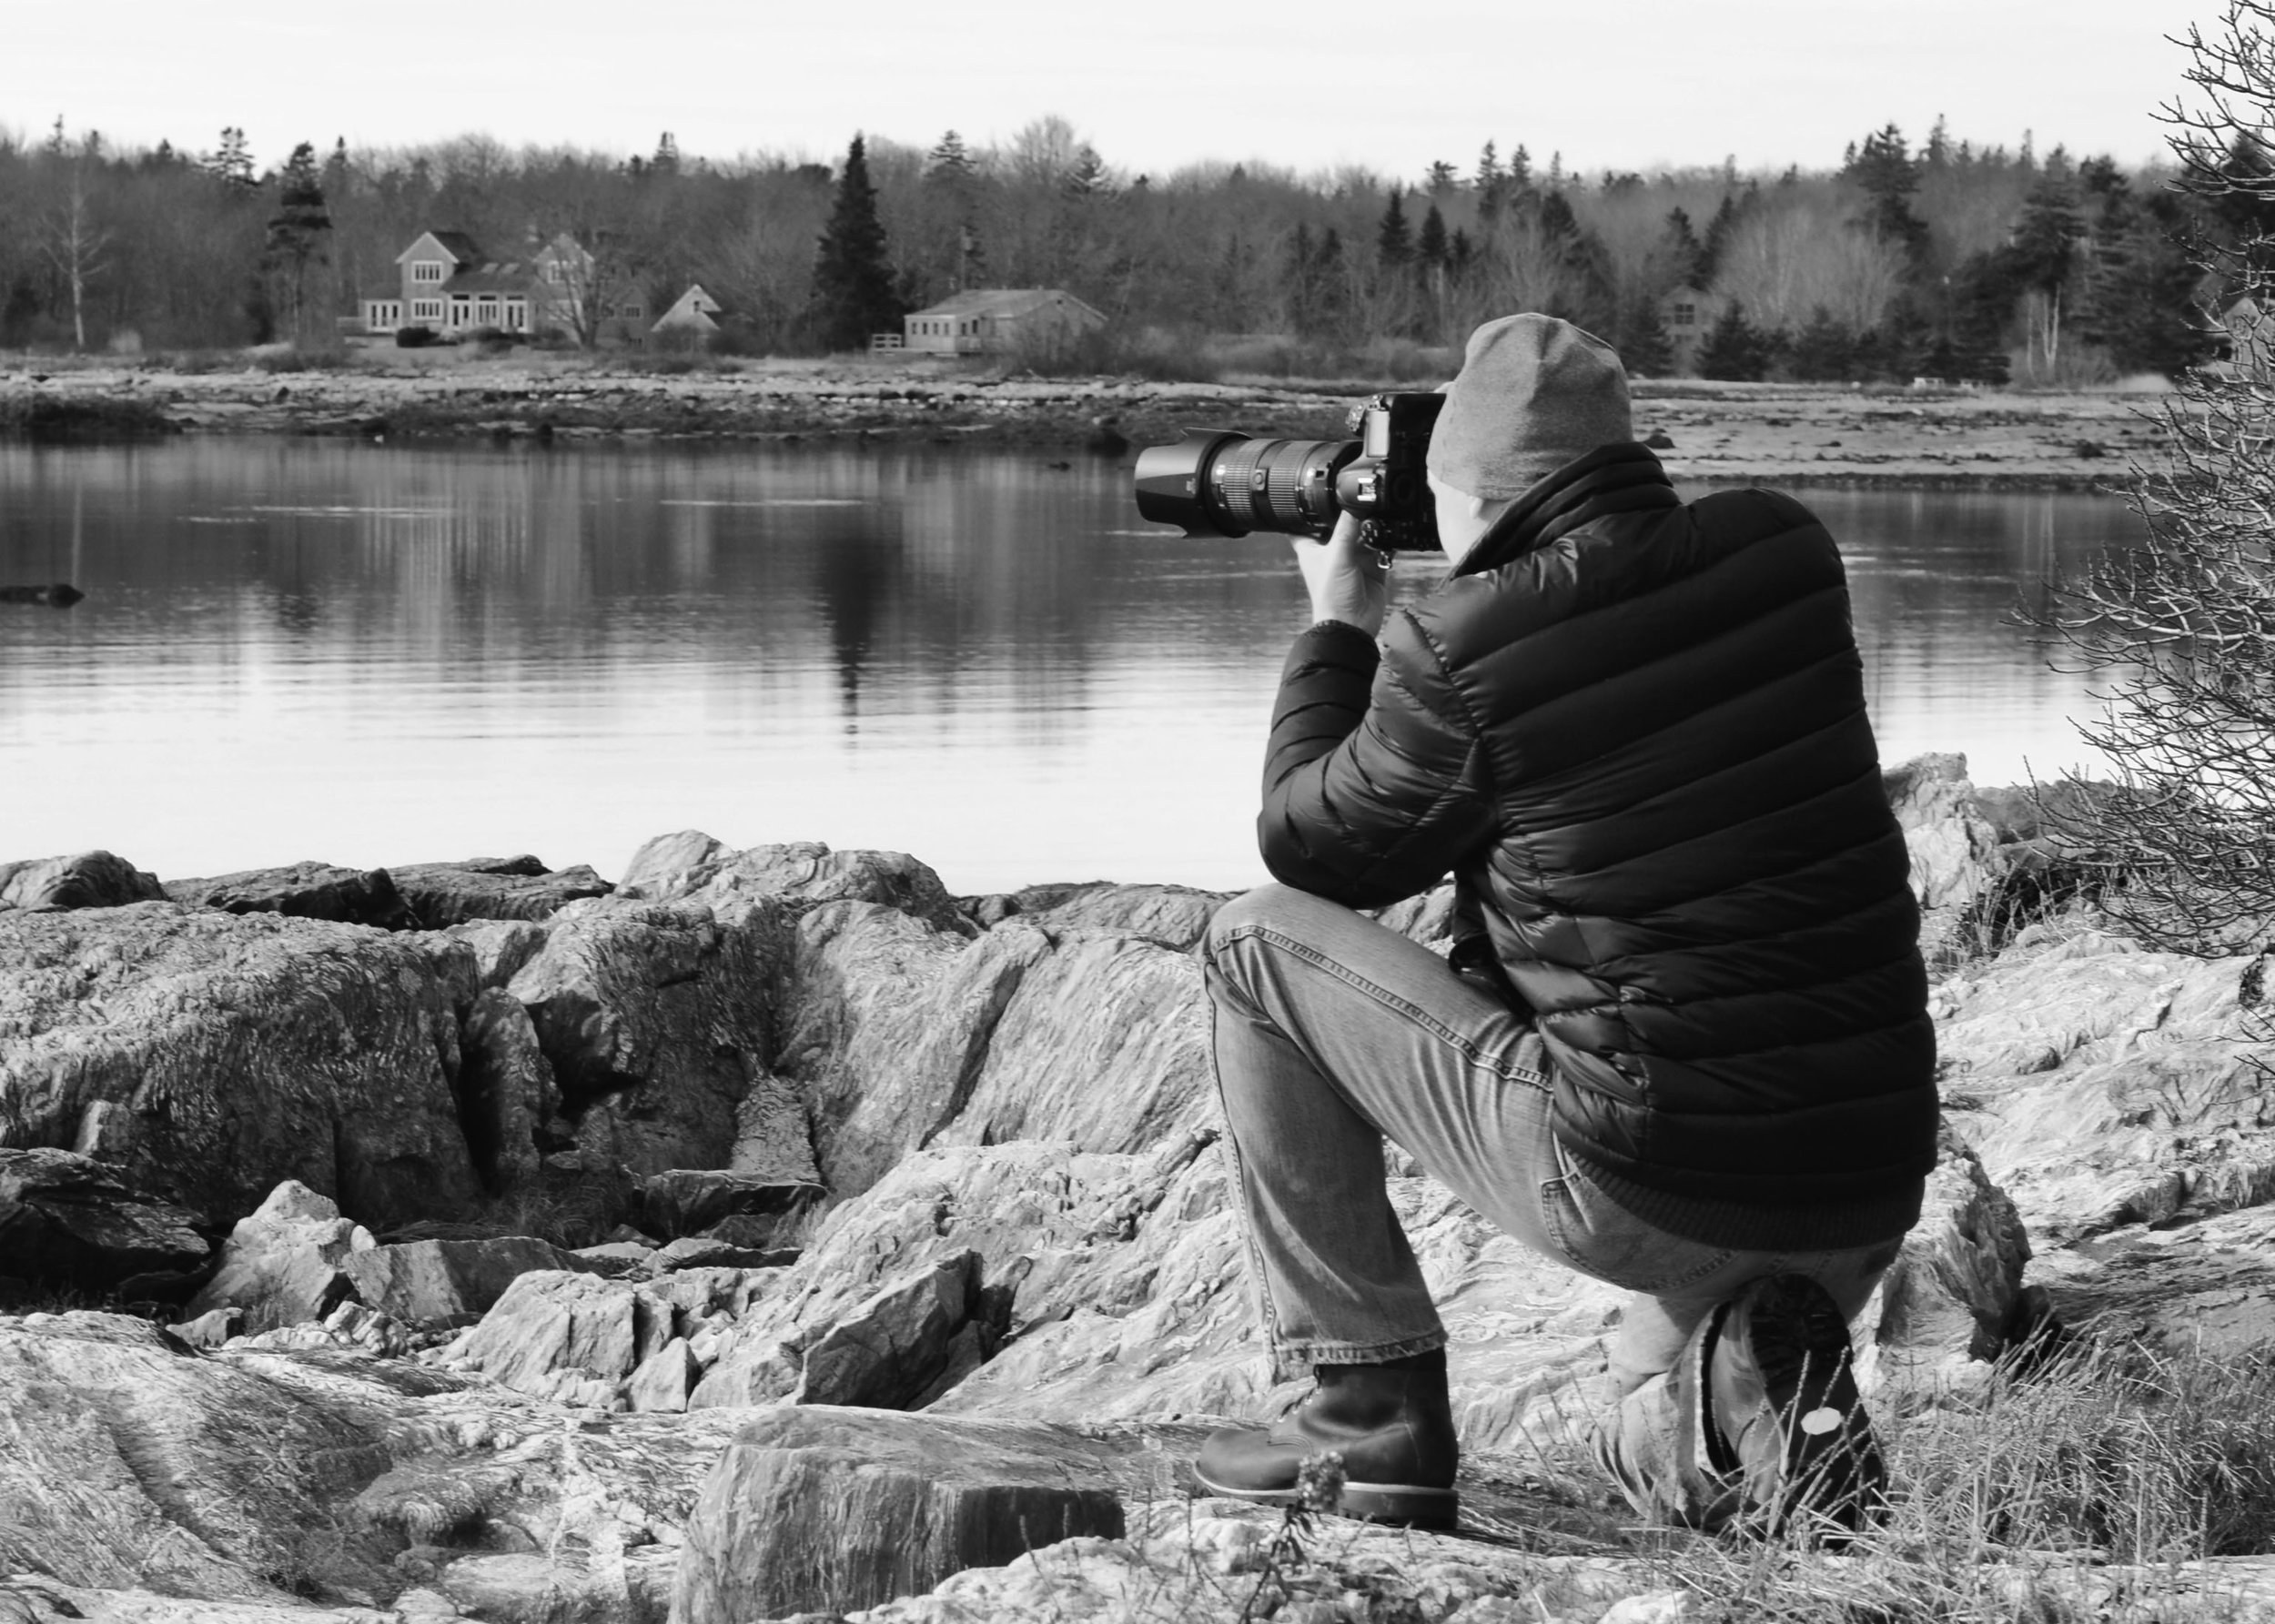 On location shooting in Maine, '16